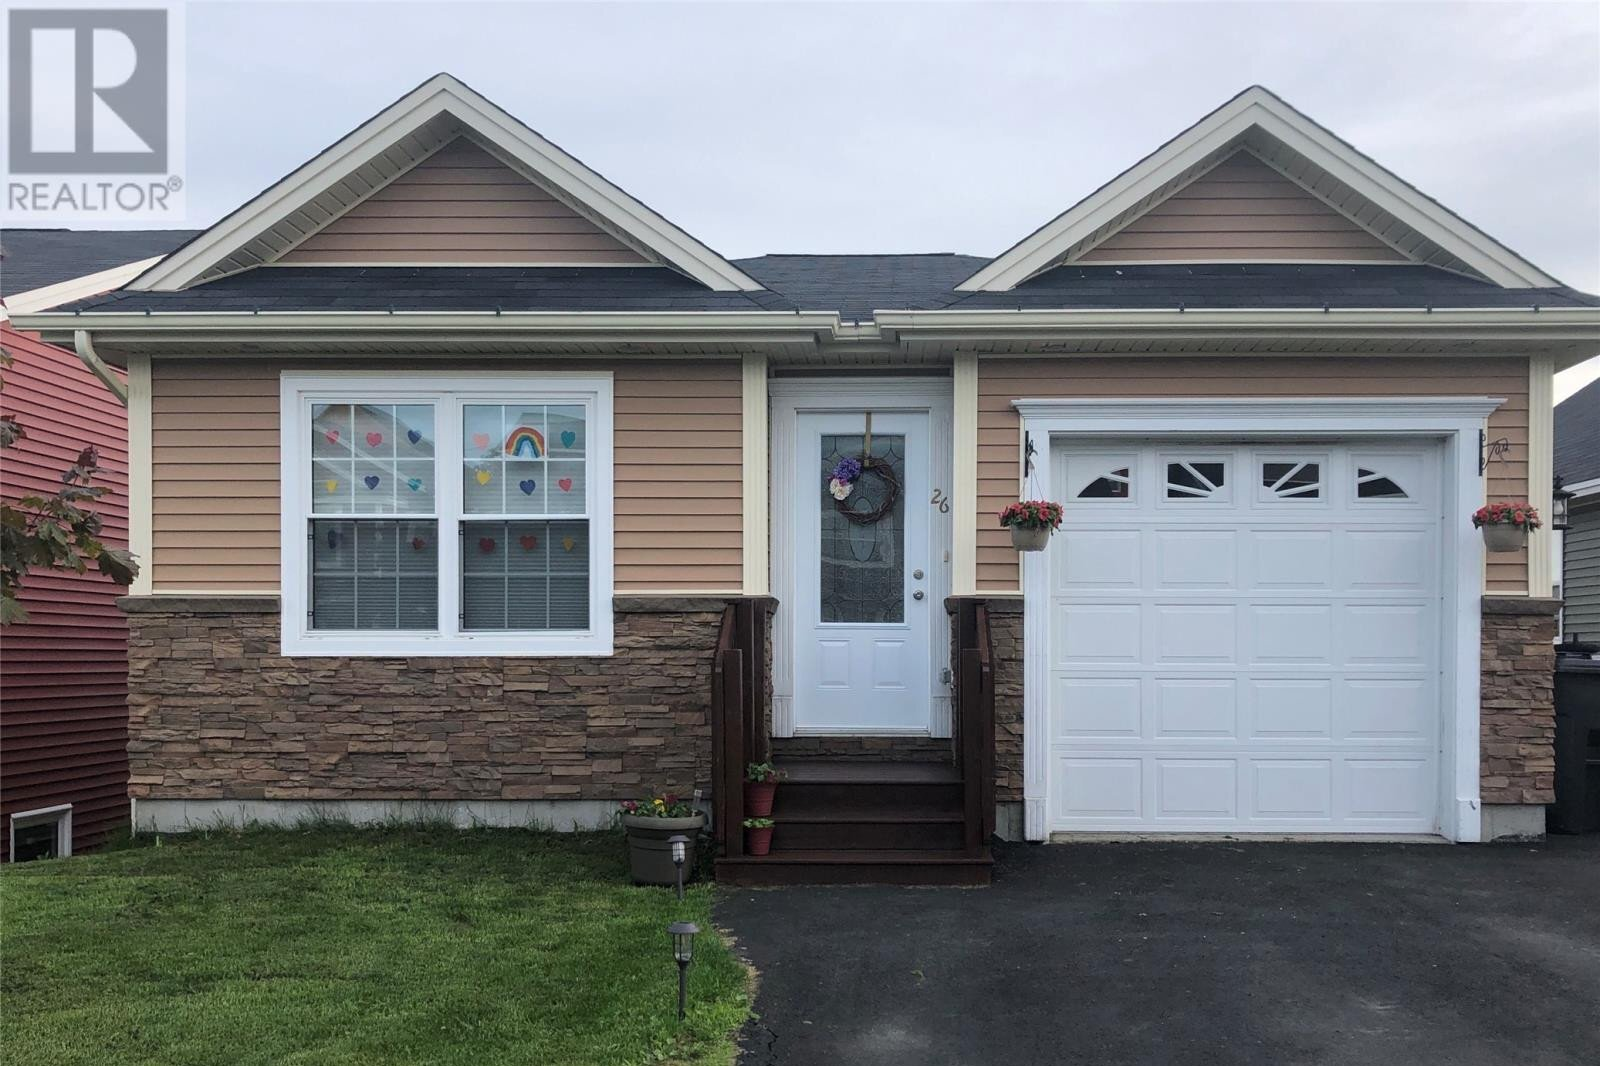 House for sale at 26 Simcoe Dr Mount Pearl Newfoundland - MLS: 1216804